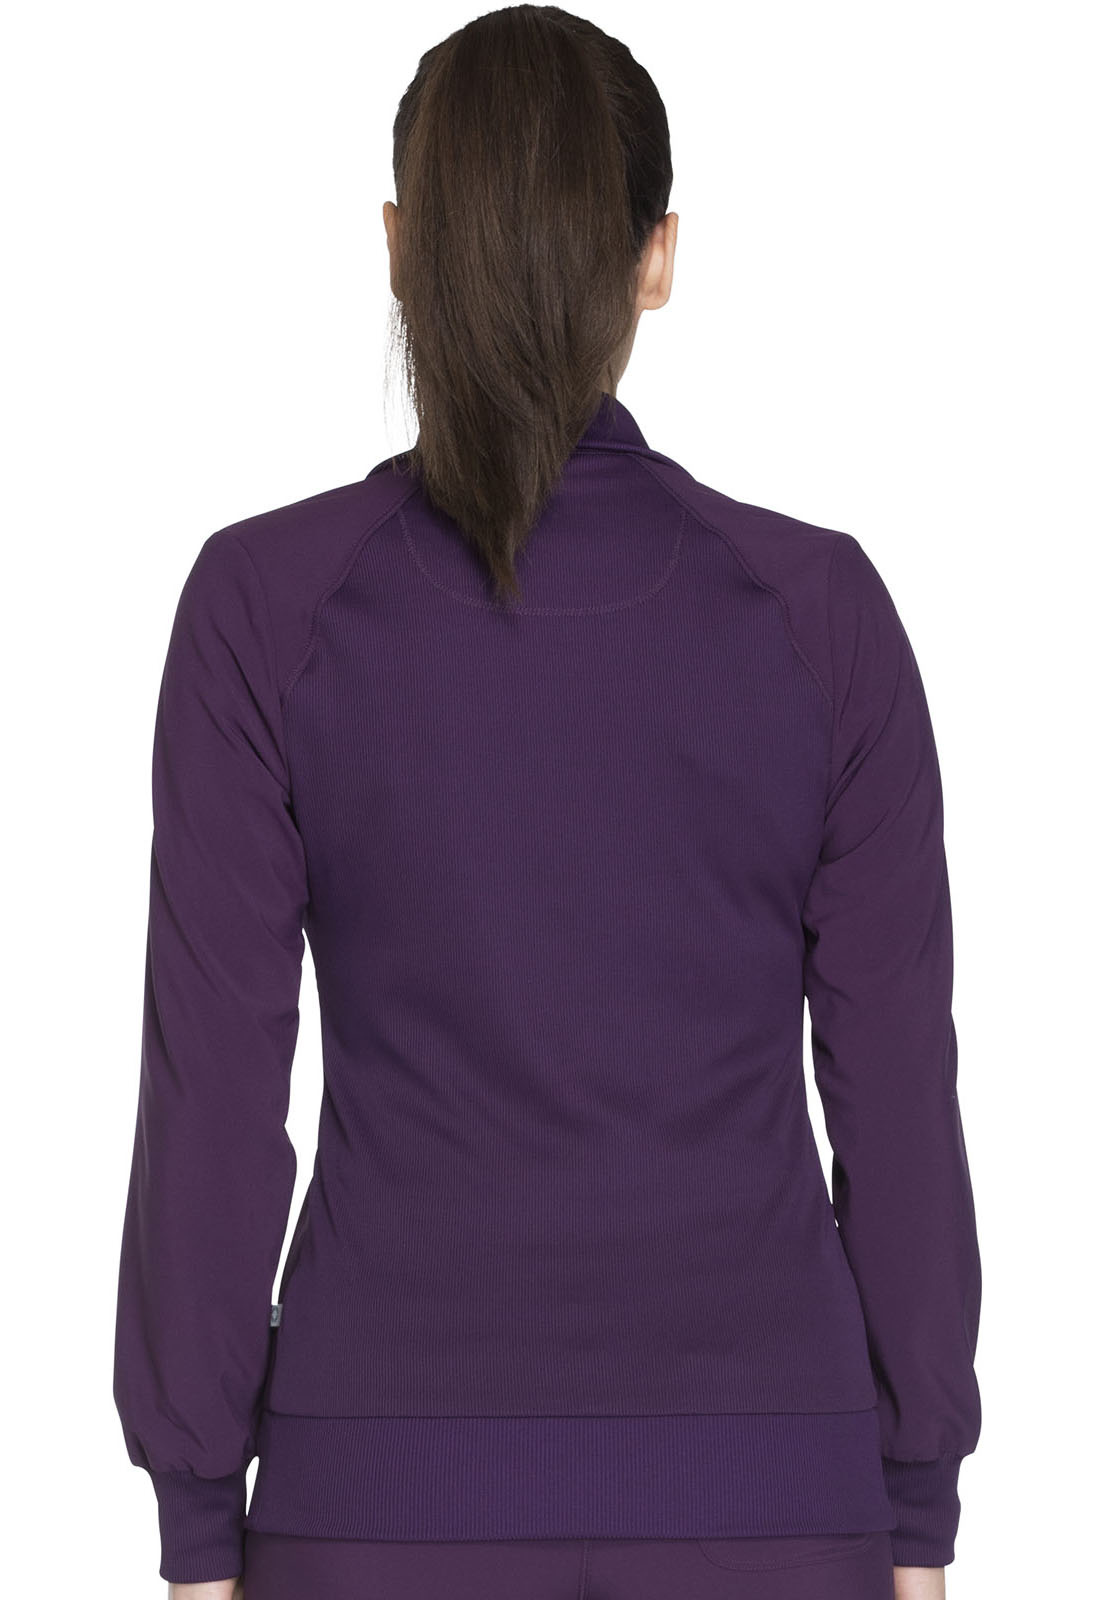 CHEROKEE Eggplant Cherokee Women's Warm Up Jacket 2391A